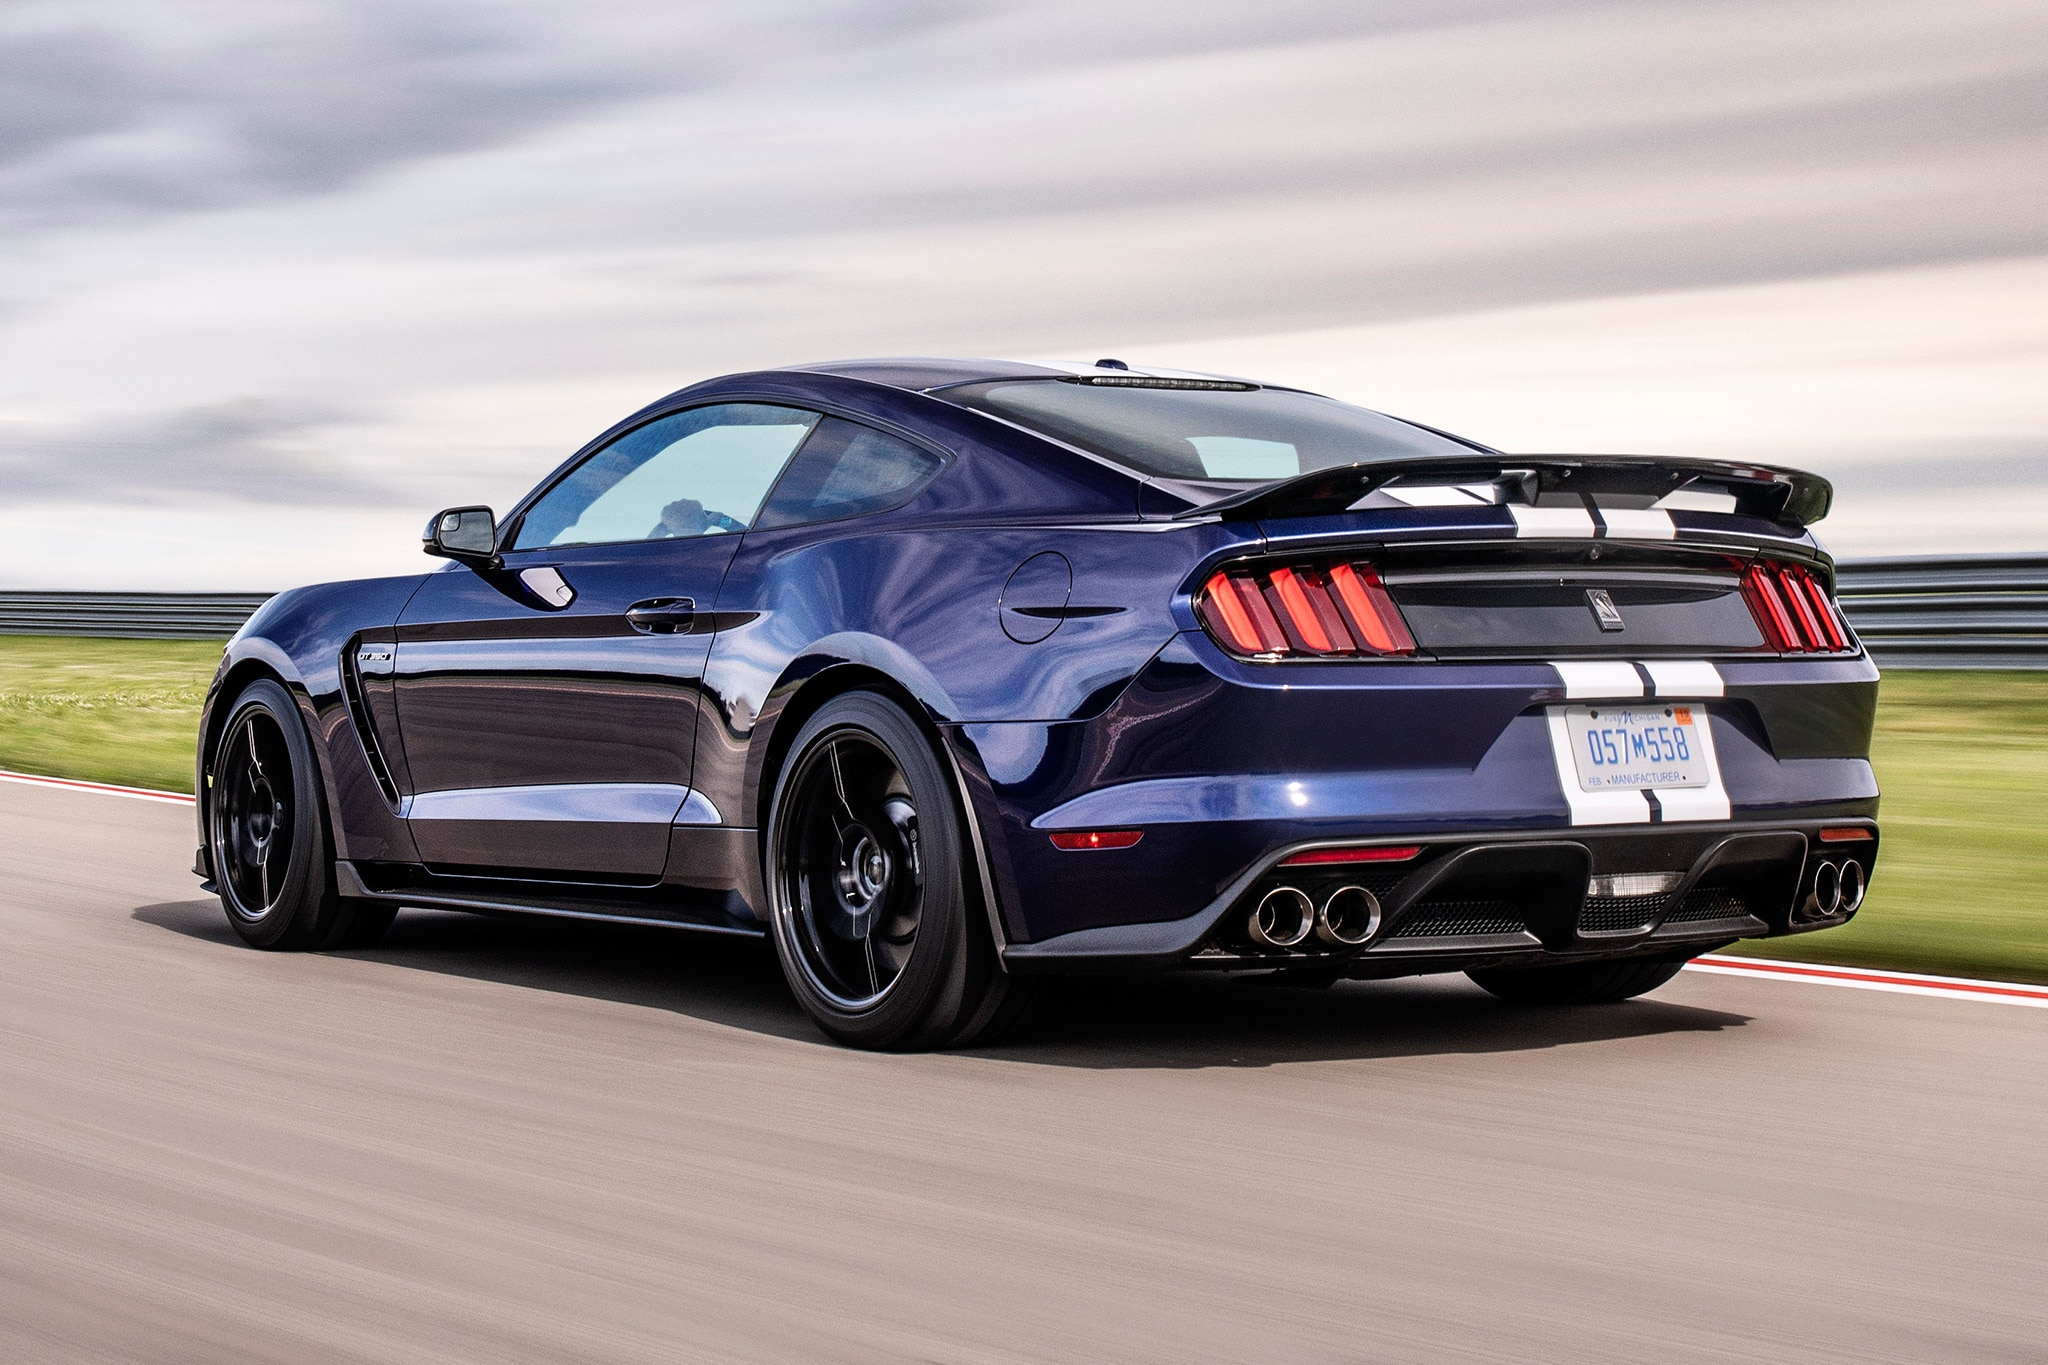 Gt350r For Sale >> Ford Upgrades Mustang Shelby GT350 for 2019 | Automobile Magazine